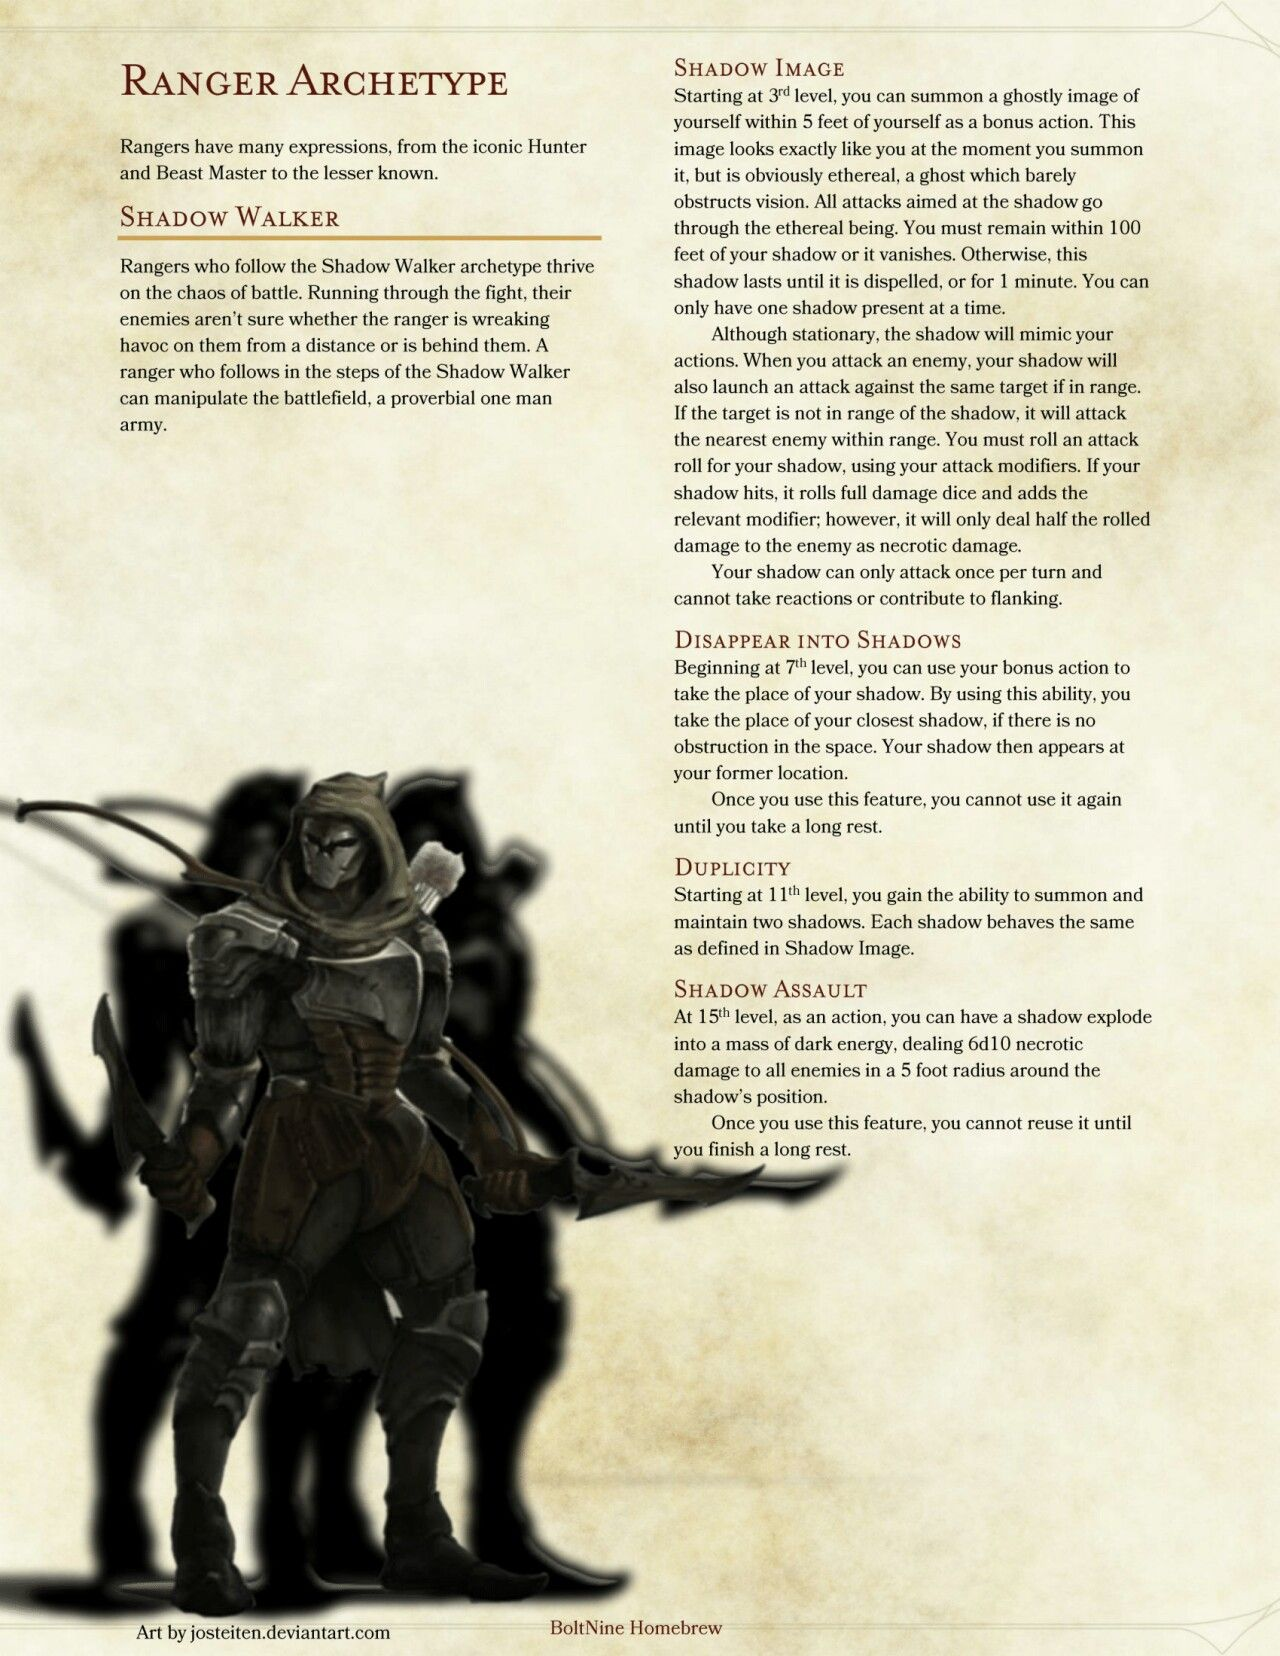 Pin by Nathan Ballard on D&D Homebrew | Dnd 5e homebrew, Dnd classes